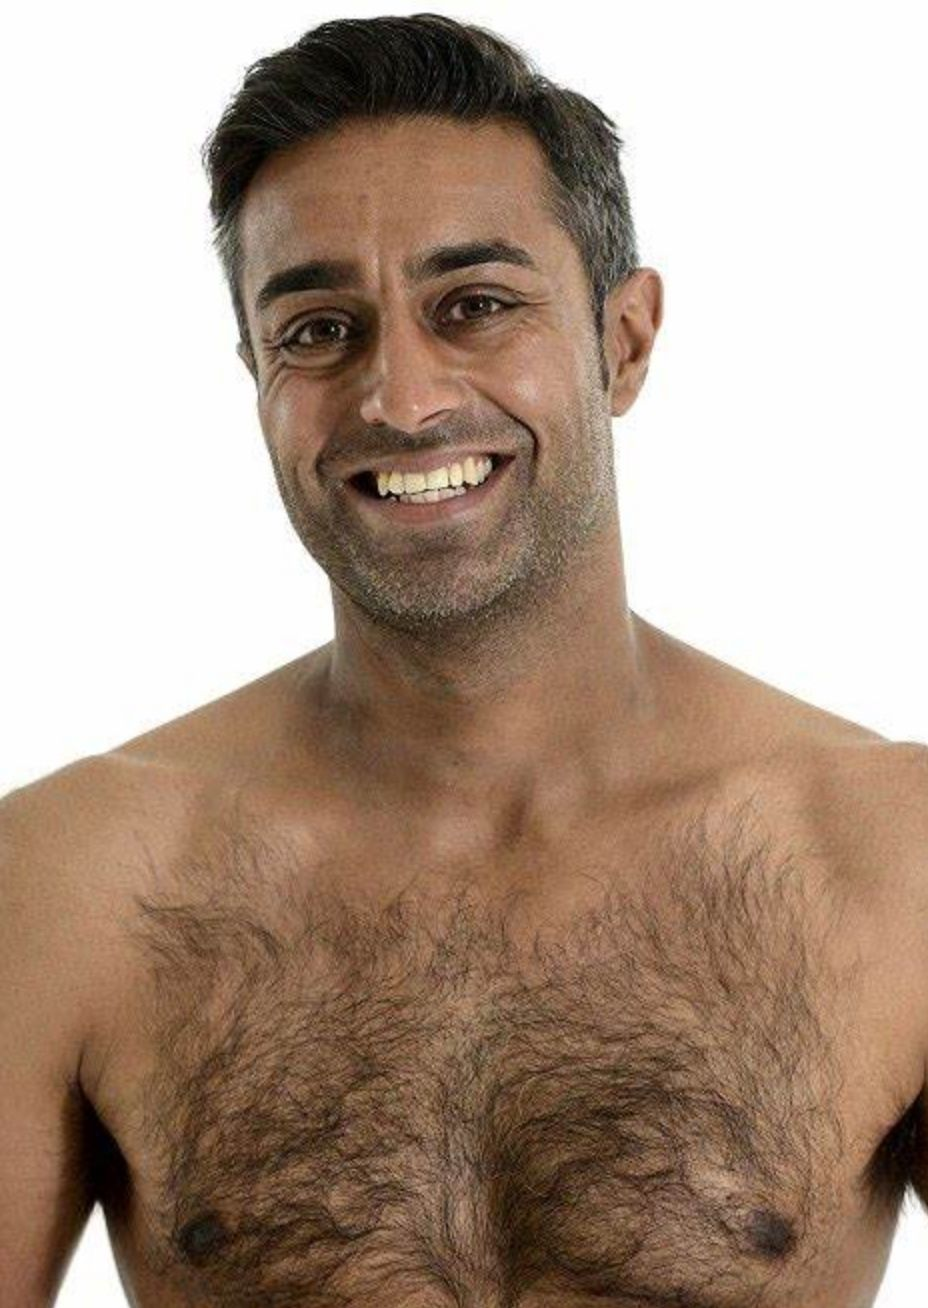 Pin by Steven Schlipstein on TORSOS   Mens muscle, Facial